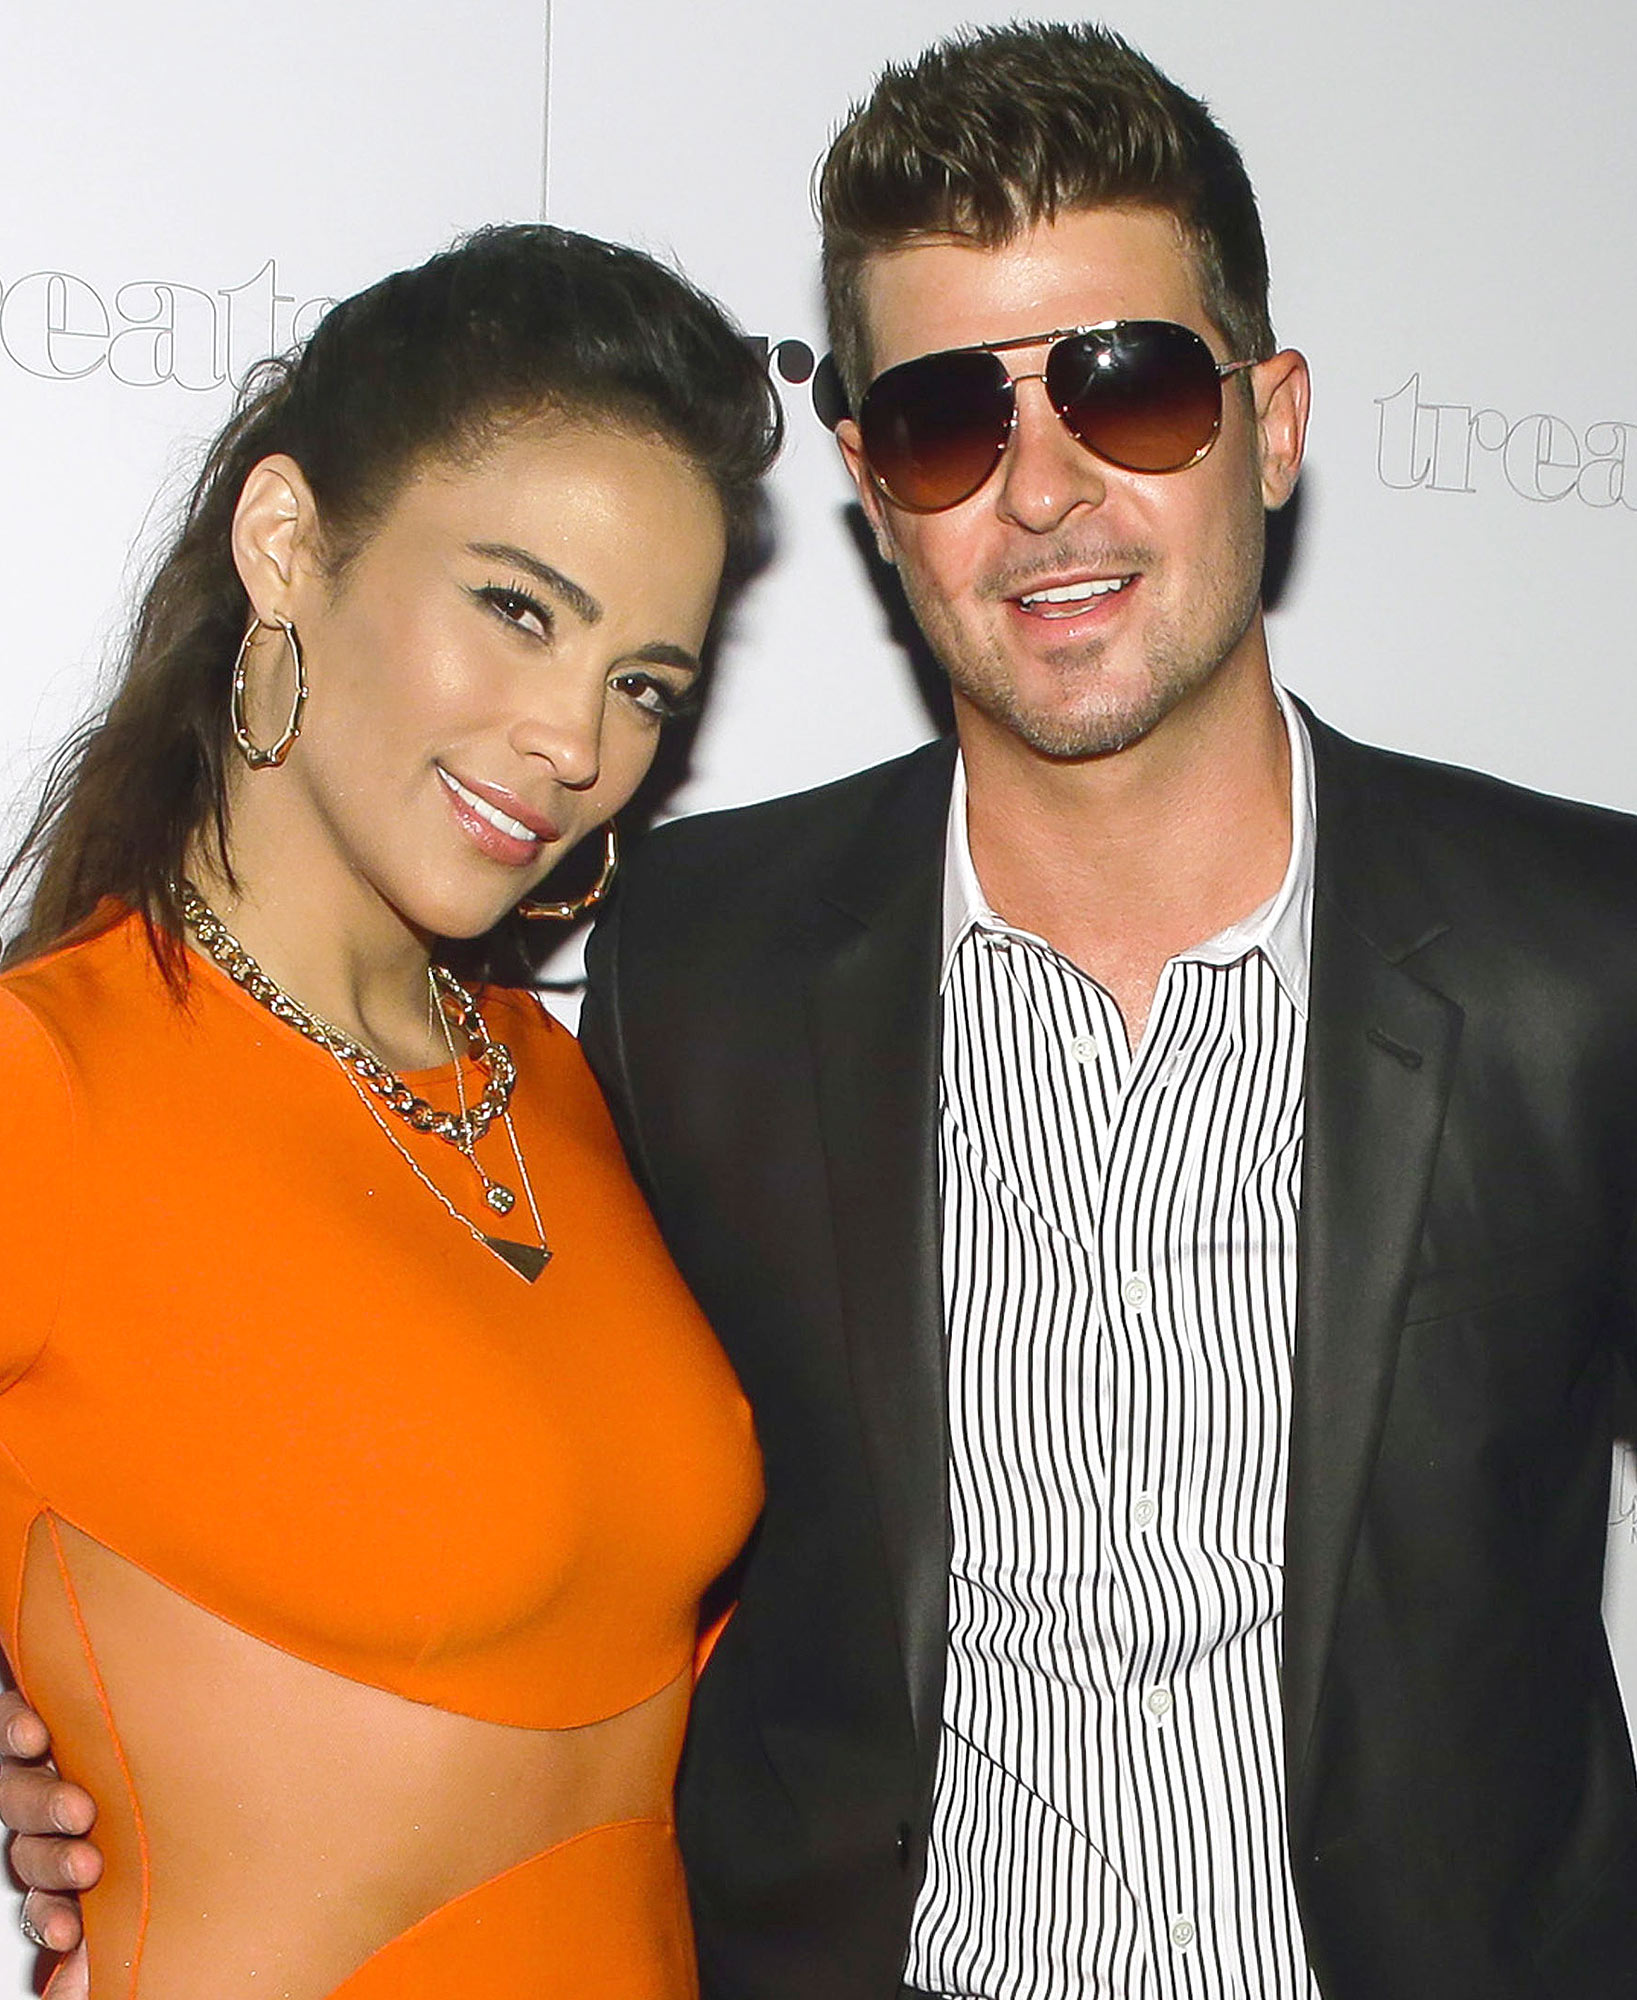 NEW YORK, NY - SEPTEMBER 04: (L-R) Paula Patton and Robin Thicke attend Robin Thicke's Album Release Party at No. 8 on September 4, 2013 in New York City. (Photo by Andrew Toth/WireImage)